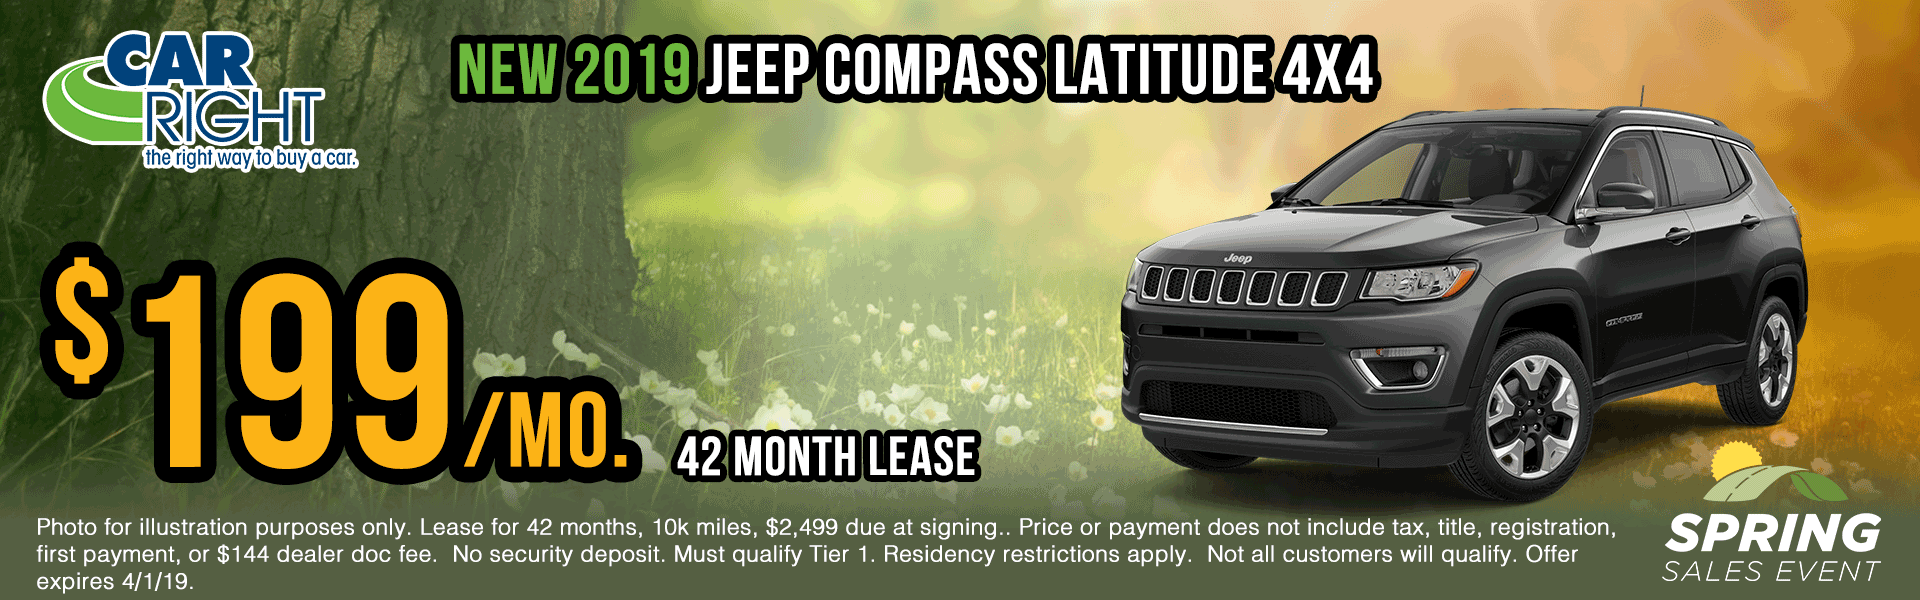 Z3394-2019-jeep-compass-latitude Spring sales event ram truck month jeep specials Chrysler specials ram specials dodge specials mopar specials new vehicle specials carright specials moon twp